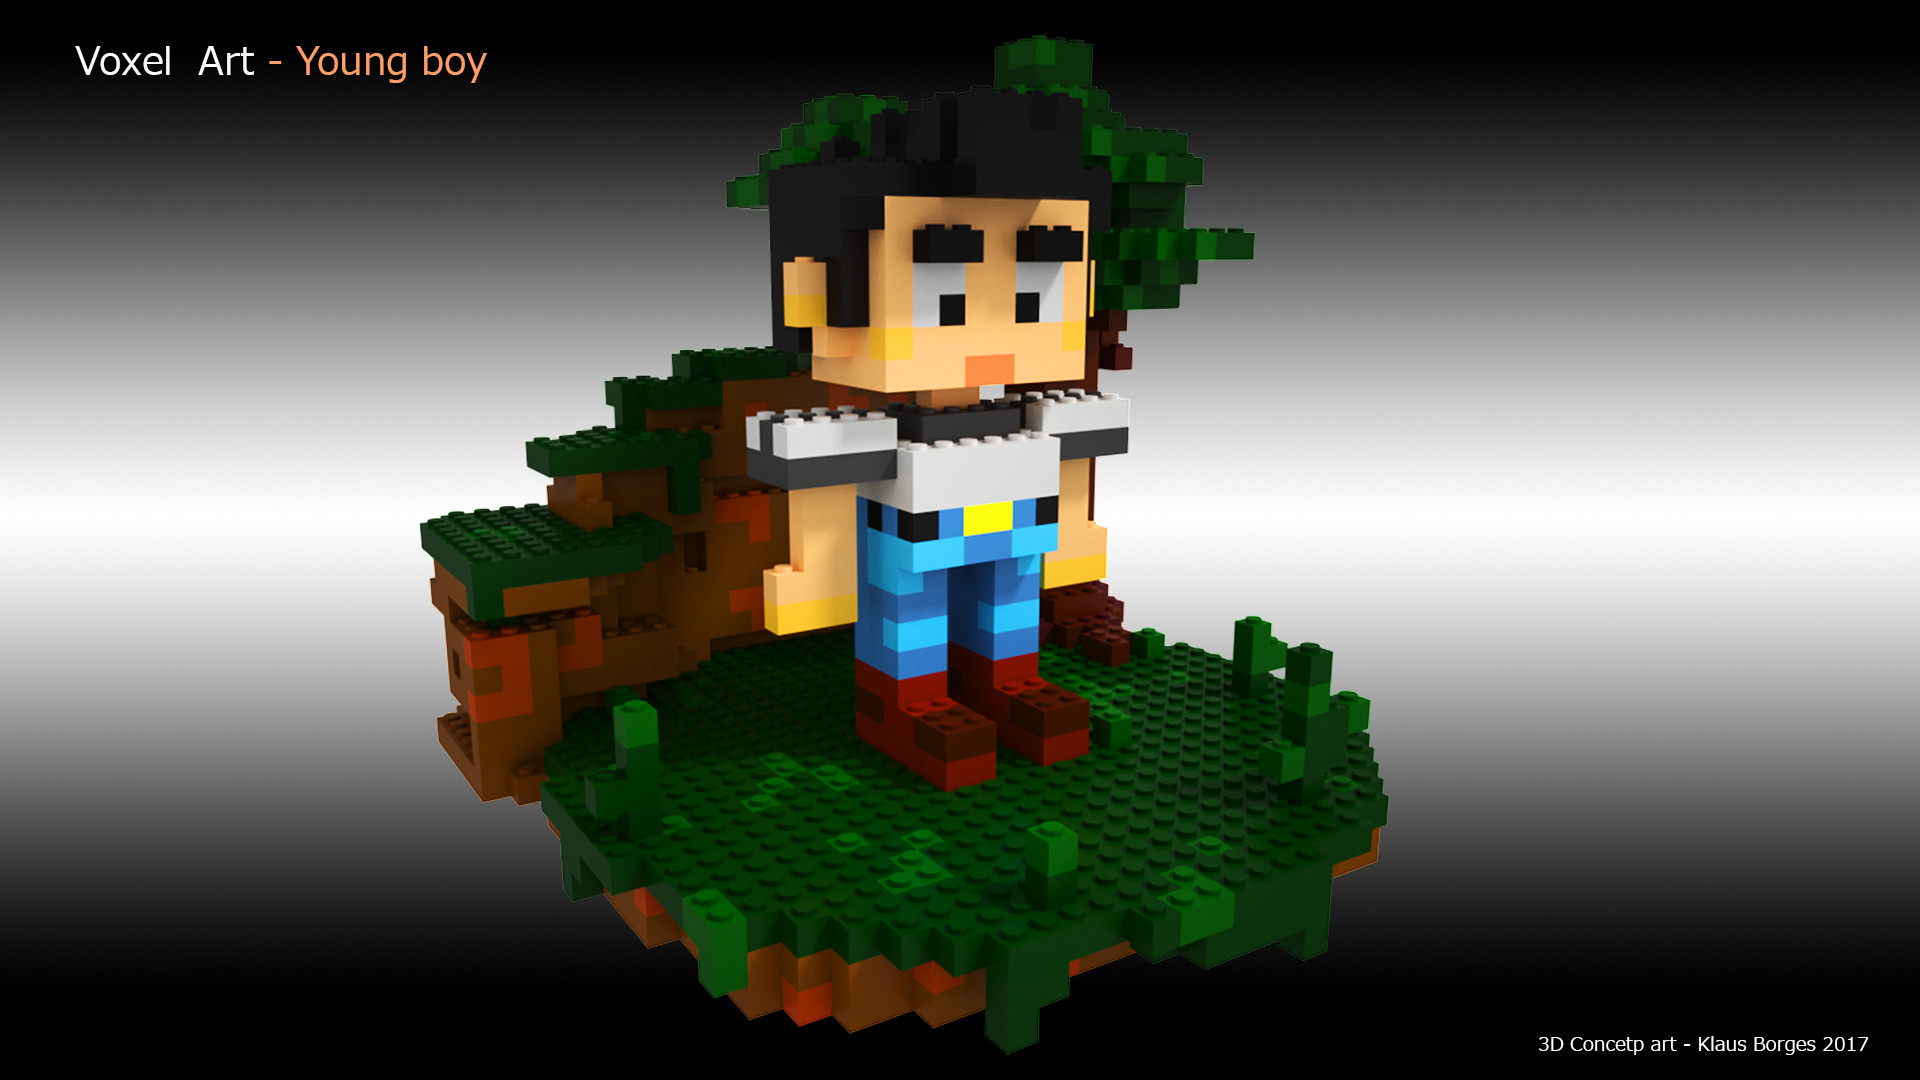 Klaus borges mockup joven masculinoenvironmentlego1